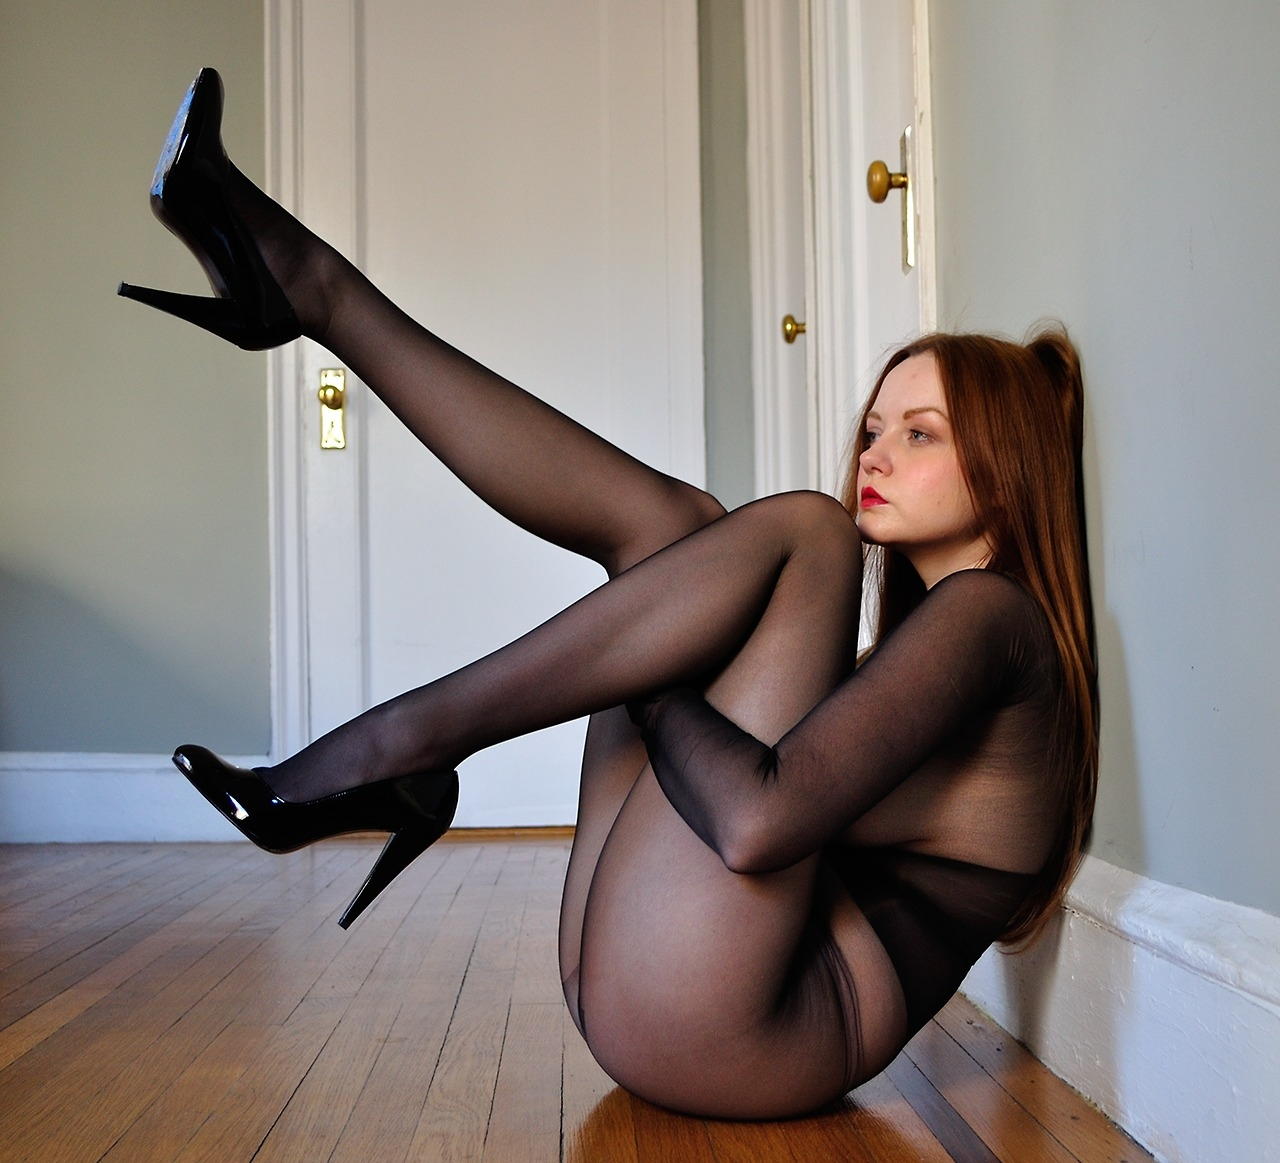 Redhead Girl encased in Black Sheer Pantyhose wearing Black Stilettos